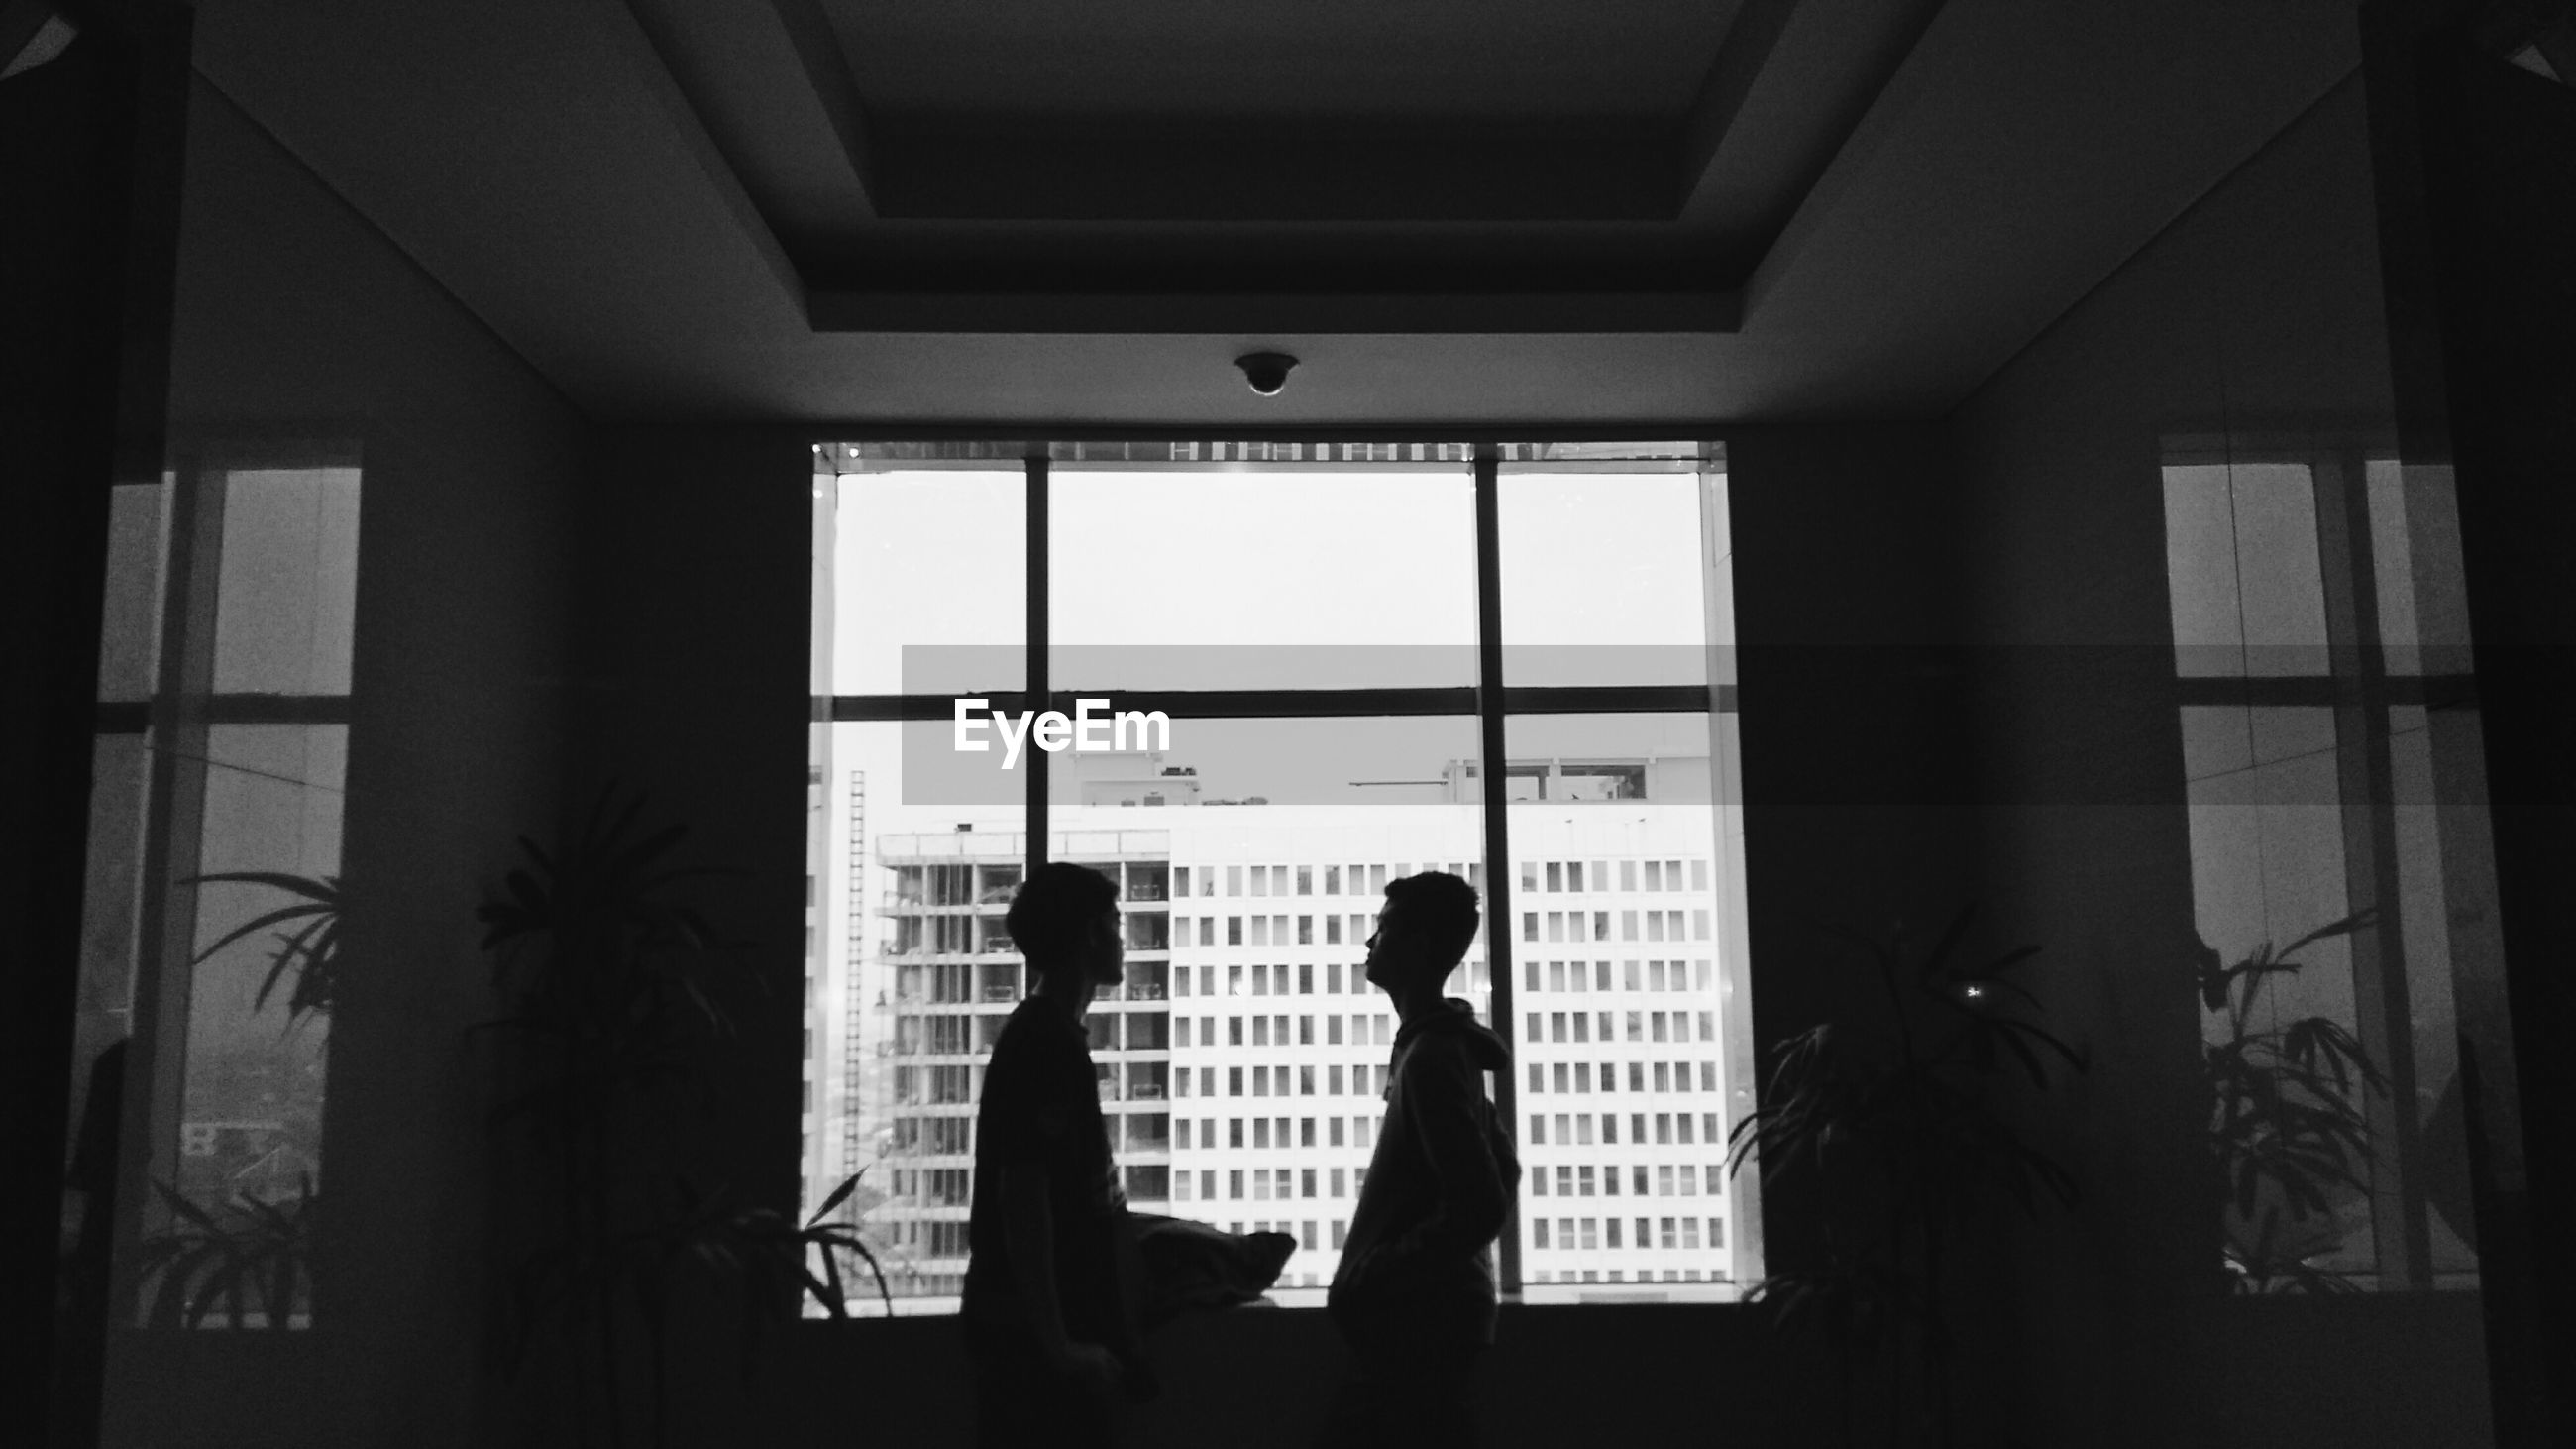 indoors, architecture, silhouette, window, built structure, men, lifestyles, glass - material, person, sunlight, walking, standing, shadow, building, day, building exterior, leisure activity, dark, transparent